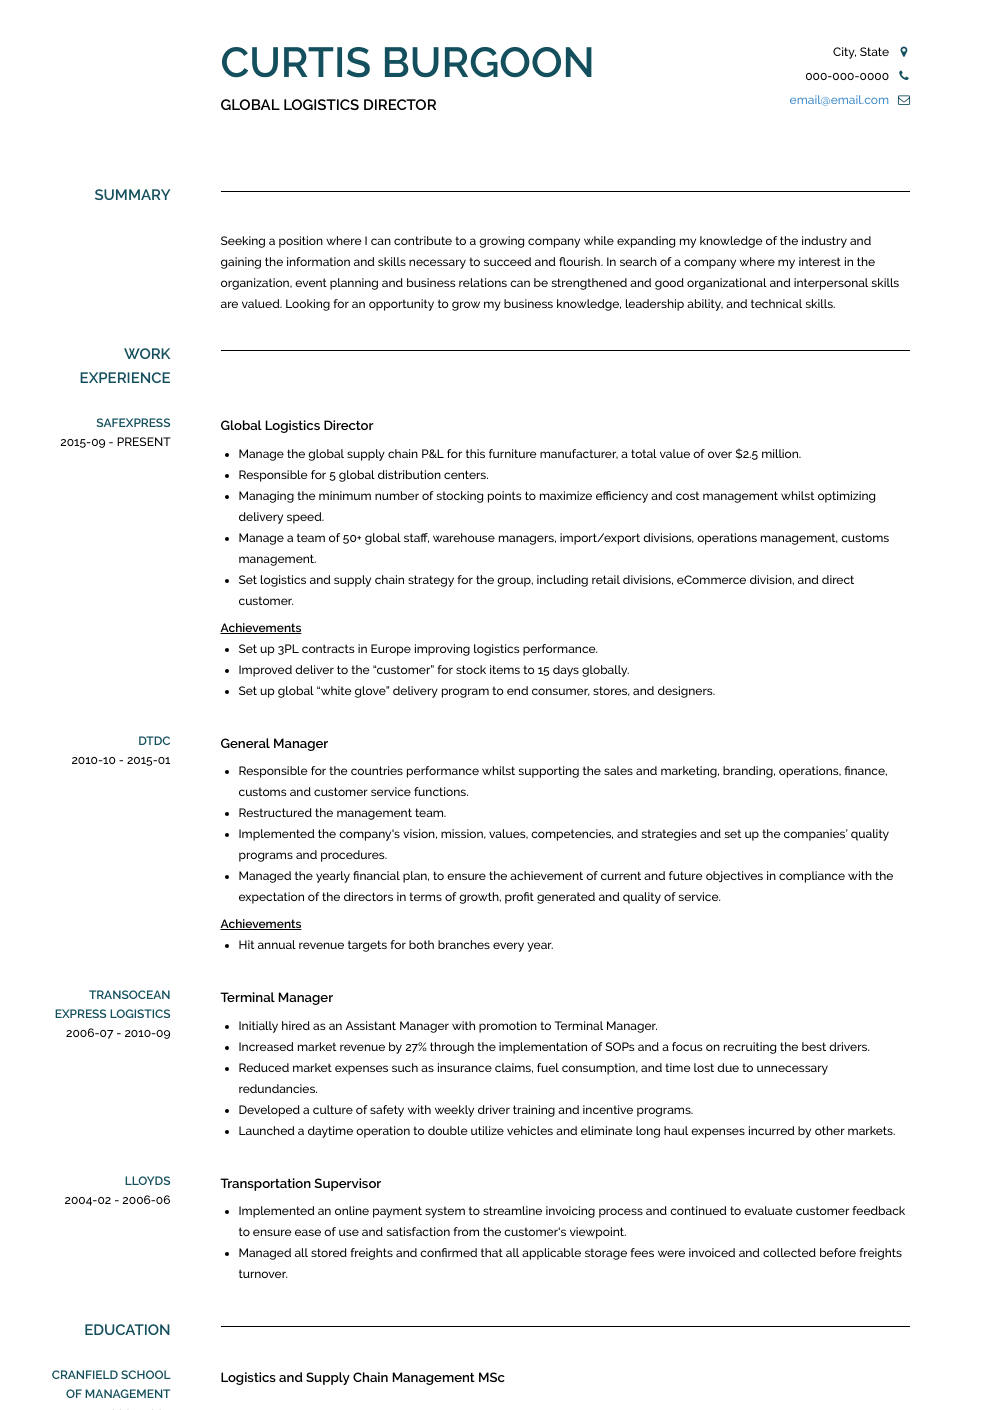 top-rated logistic manager cv template